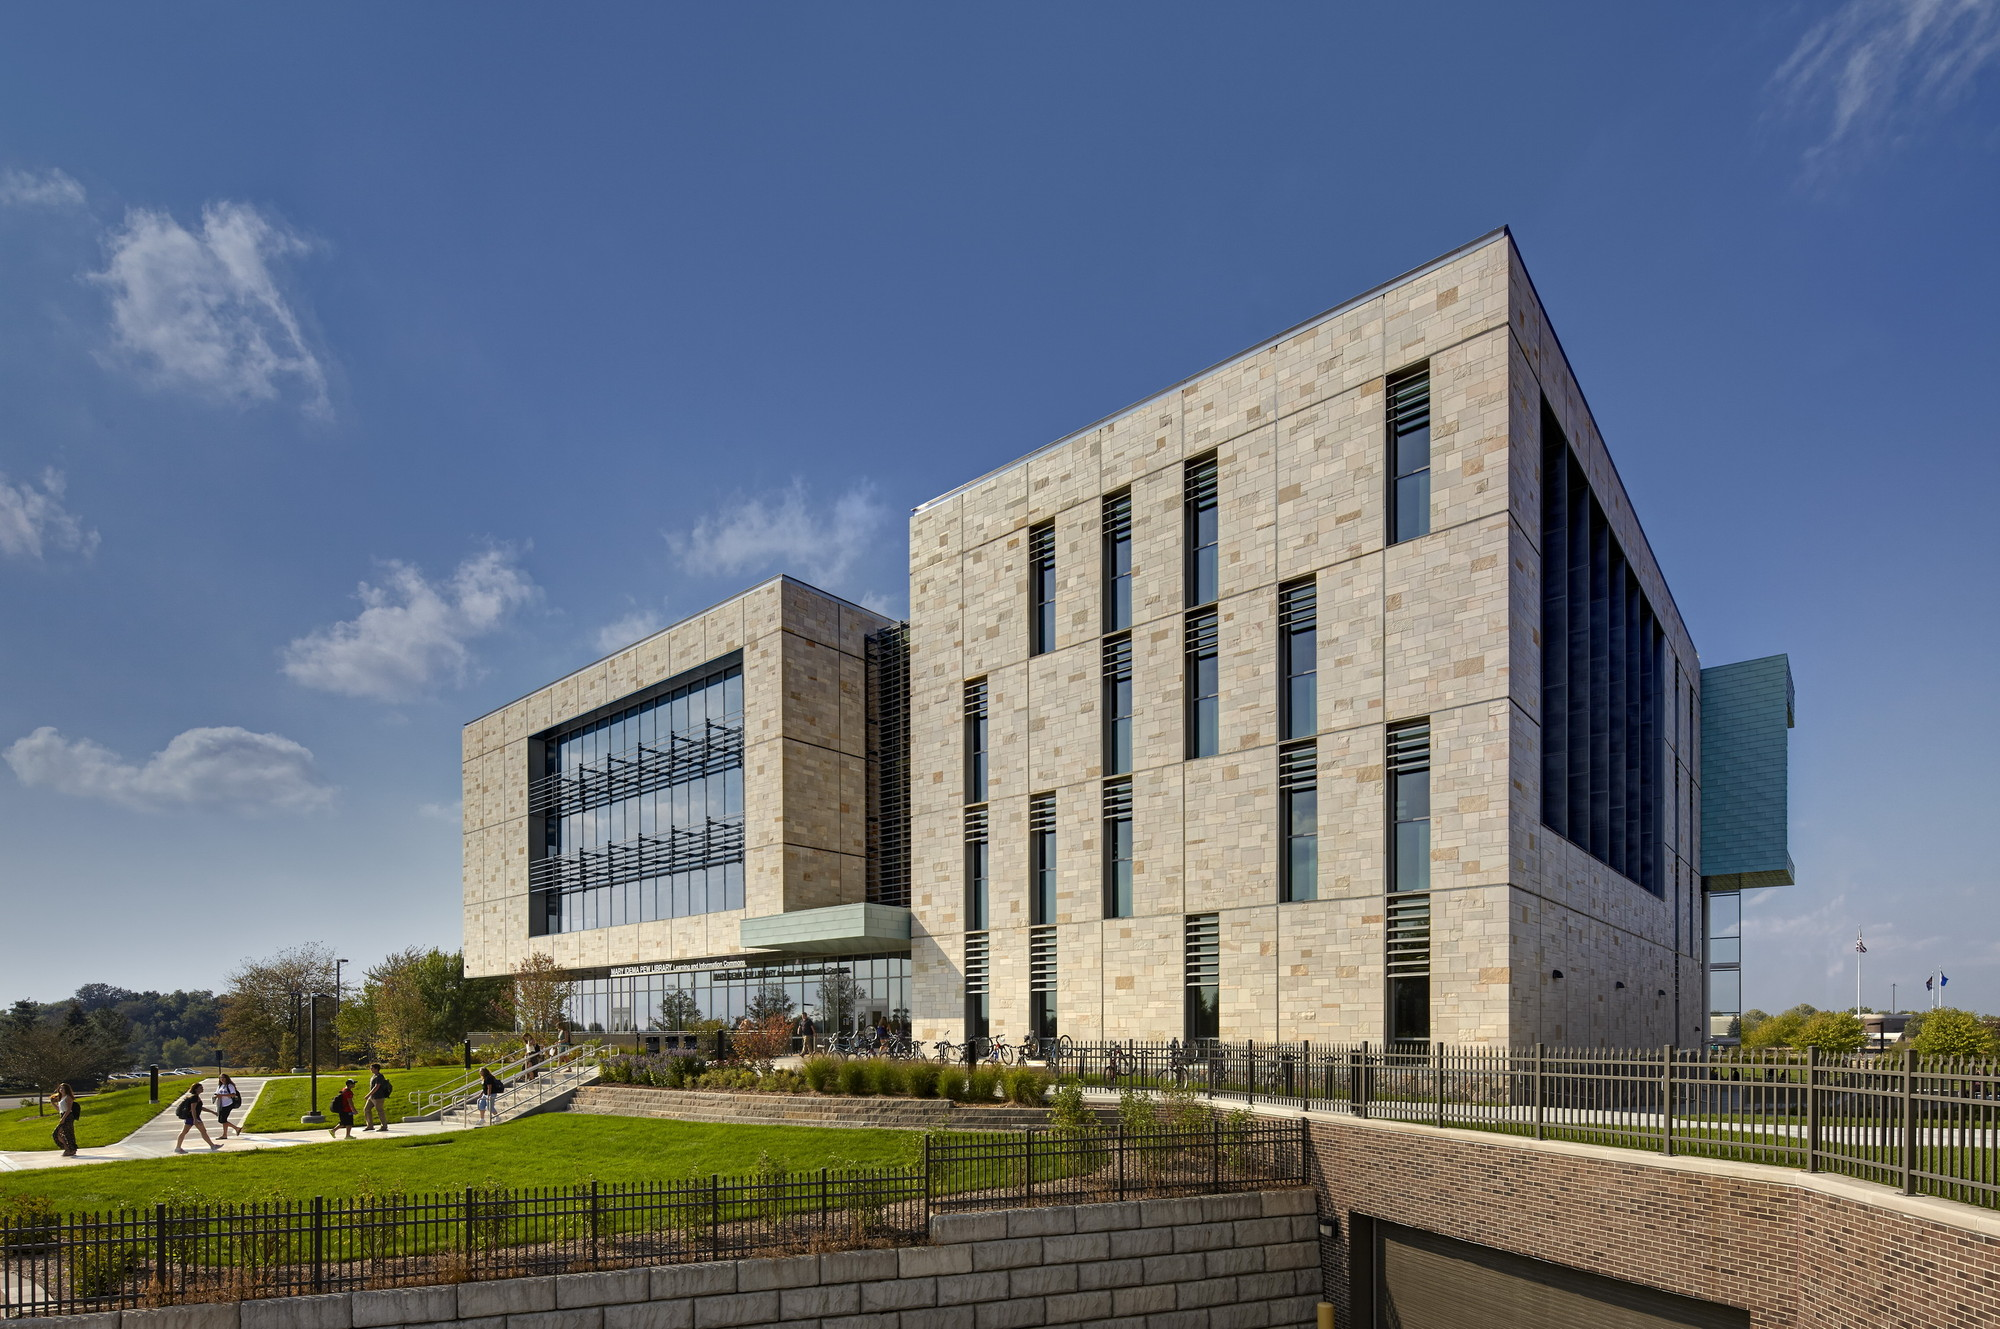 GVSU Pew Library / Stantec, Courtesy of Stantec